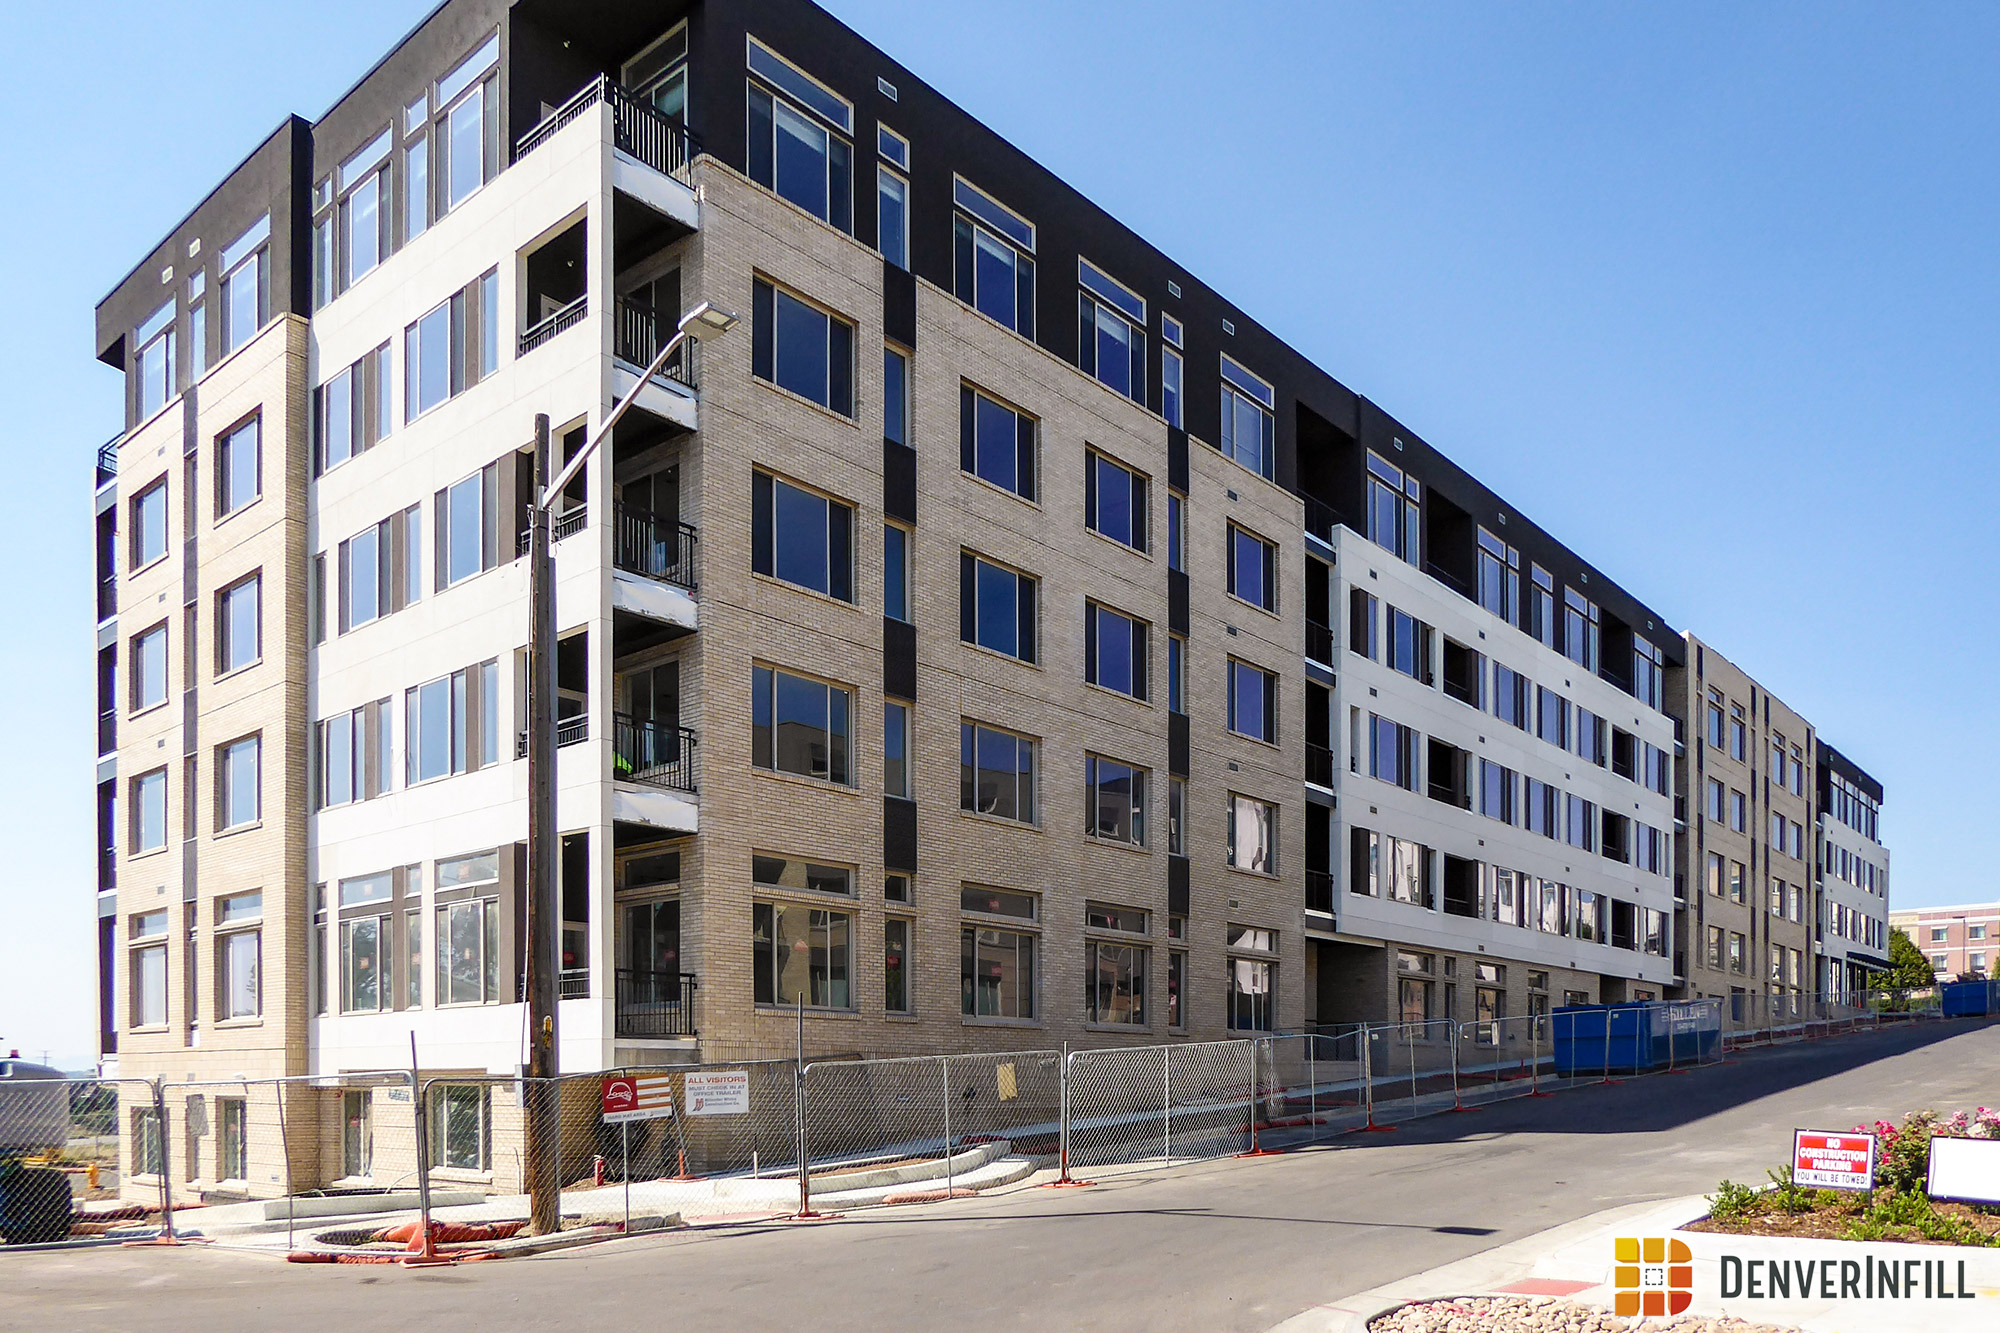 Infinity LoHi Building C from 28th and Vallejo